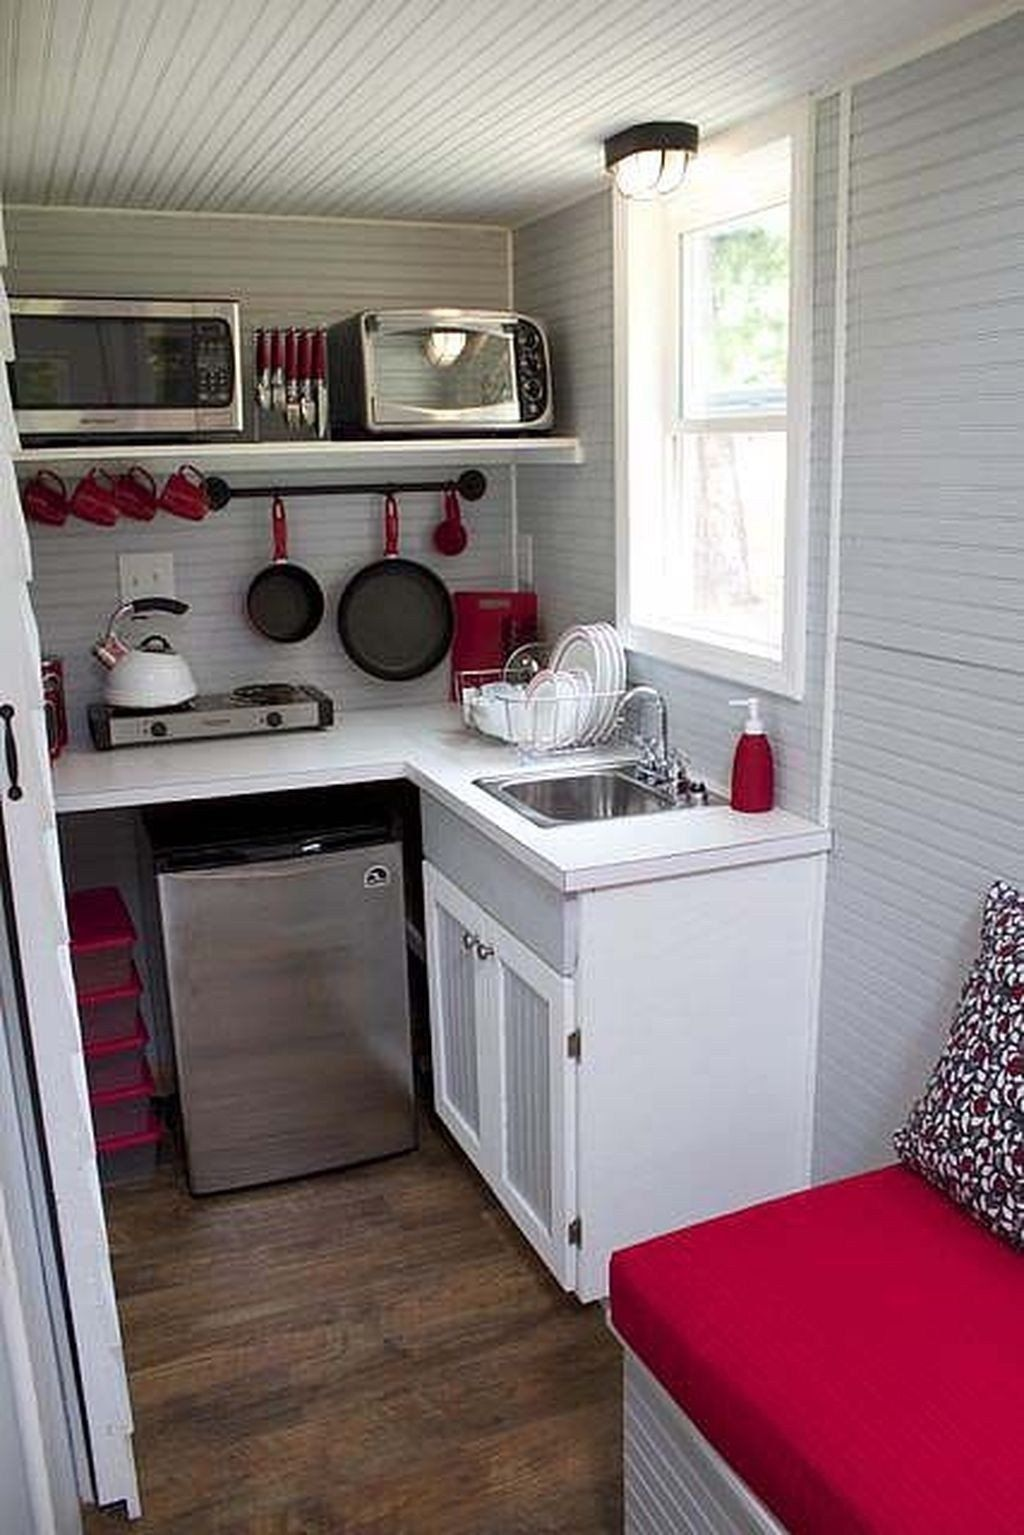 Kitchen Set For Small Space Luxury Simple Kitchen Design For Small House Heppe Tiny House Kitchen House Design Kitchen Tiny House Kitchen Appliances